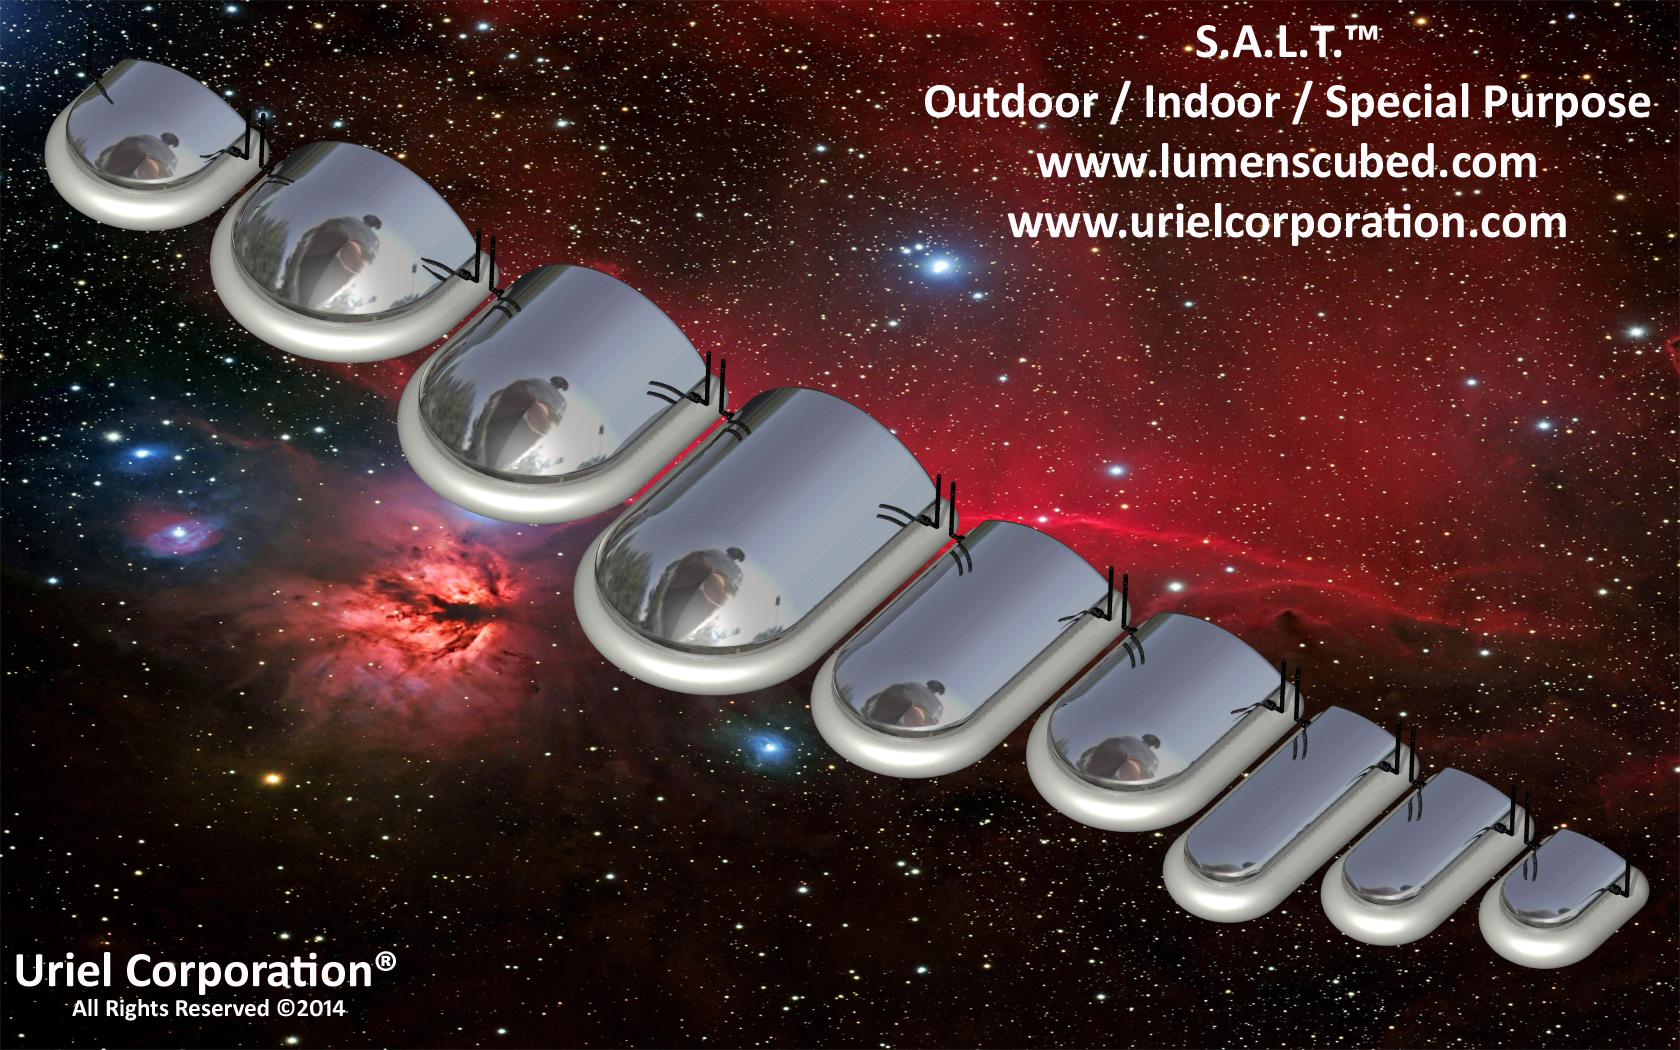 SERVO / STEPPER ASSISTED LIGHTING TECHNOLOGY (S.A.L.T.)™ OUTDOOR-INDOOR-SPECIAL PURPOSE METALLIC LED LIGHTING